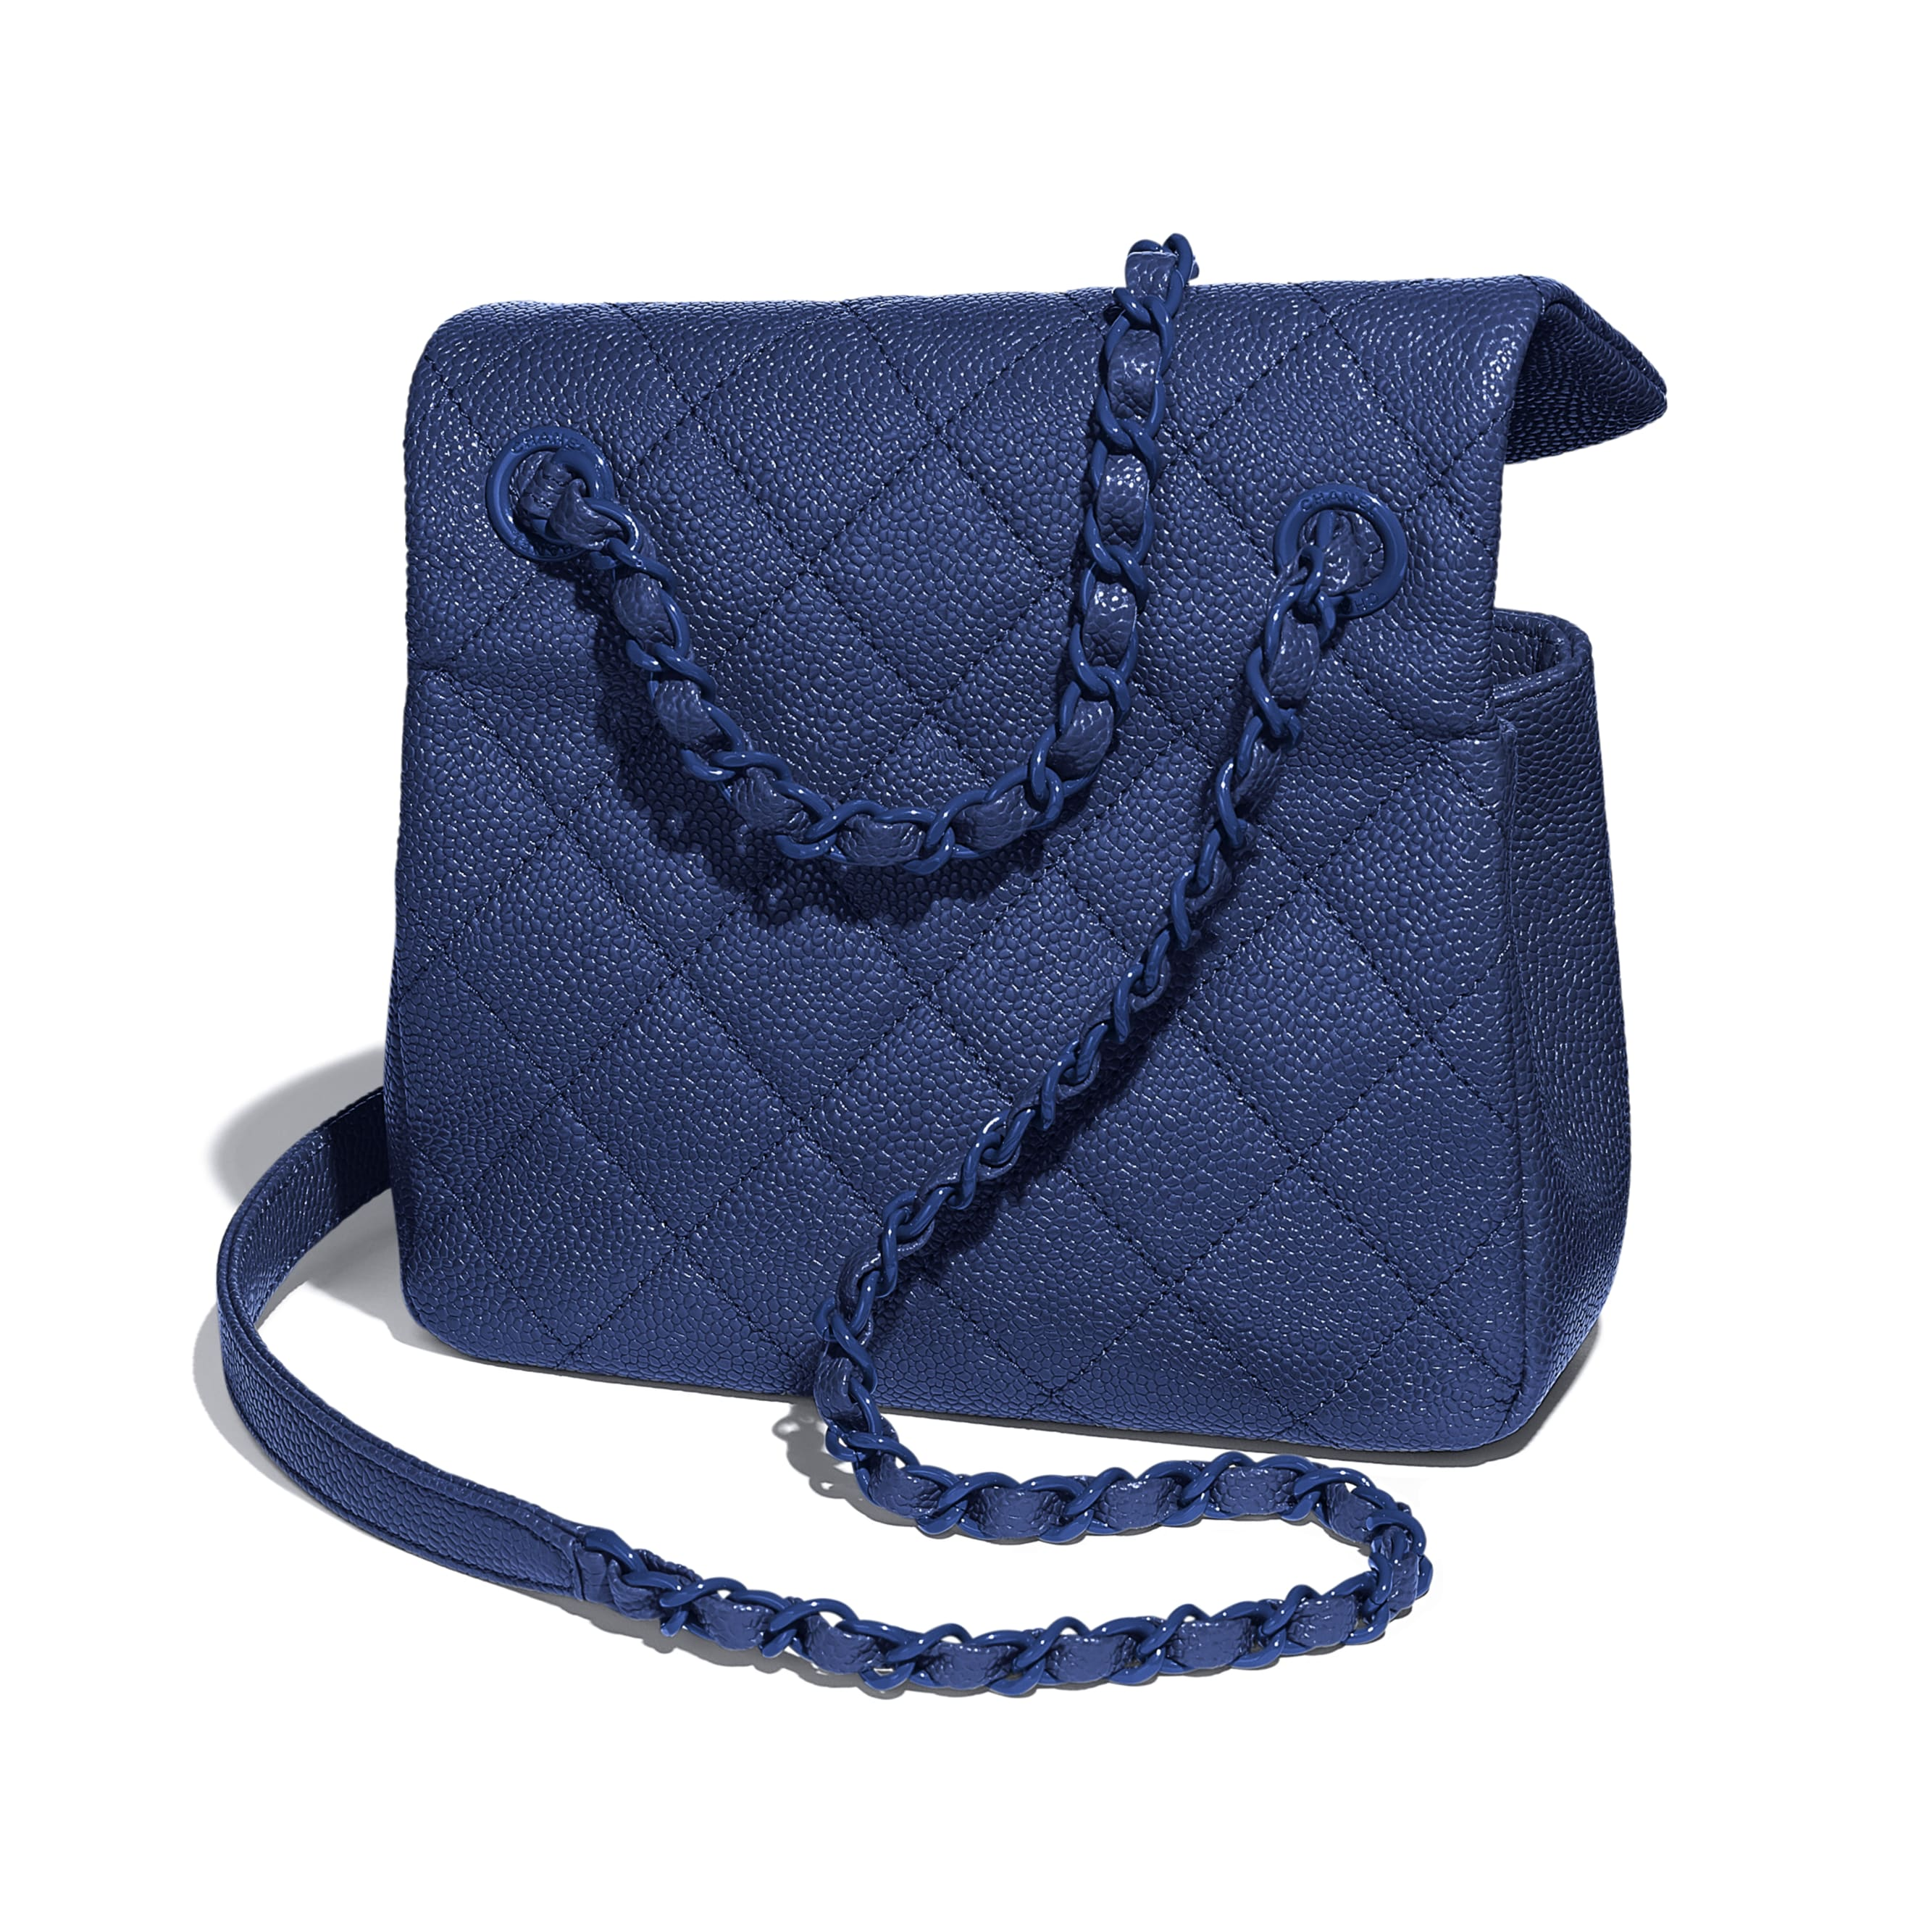 Flap Bag - Dark Blue - Grained Calfskin & Lacquered Metal - CHANEL - Extra view - see standard sized version